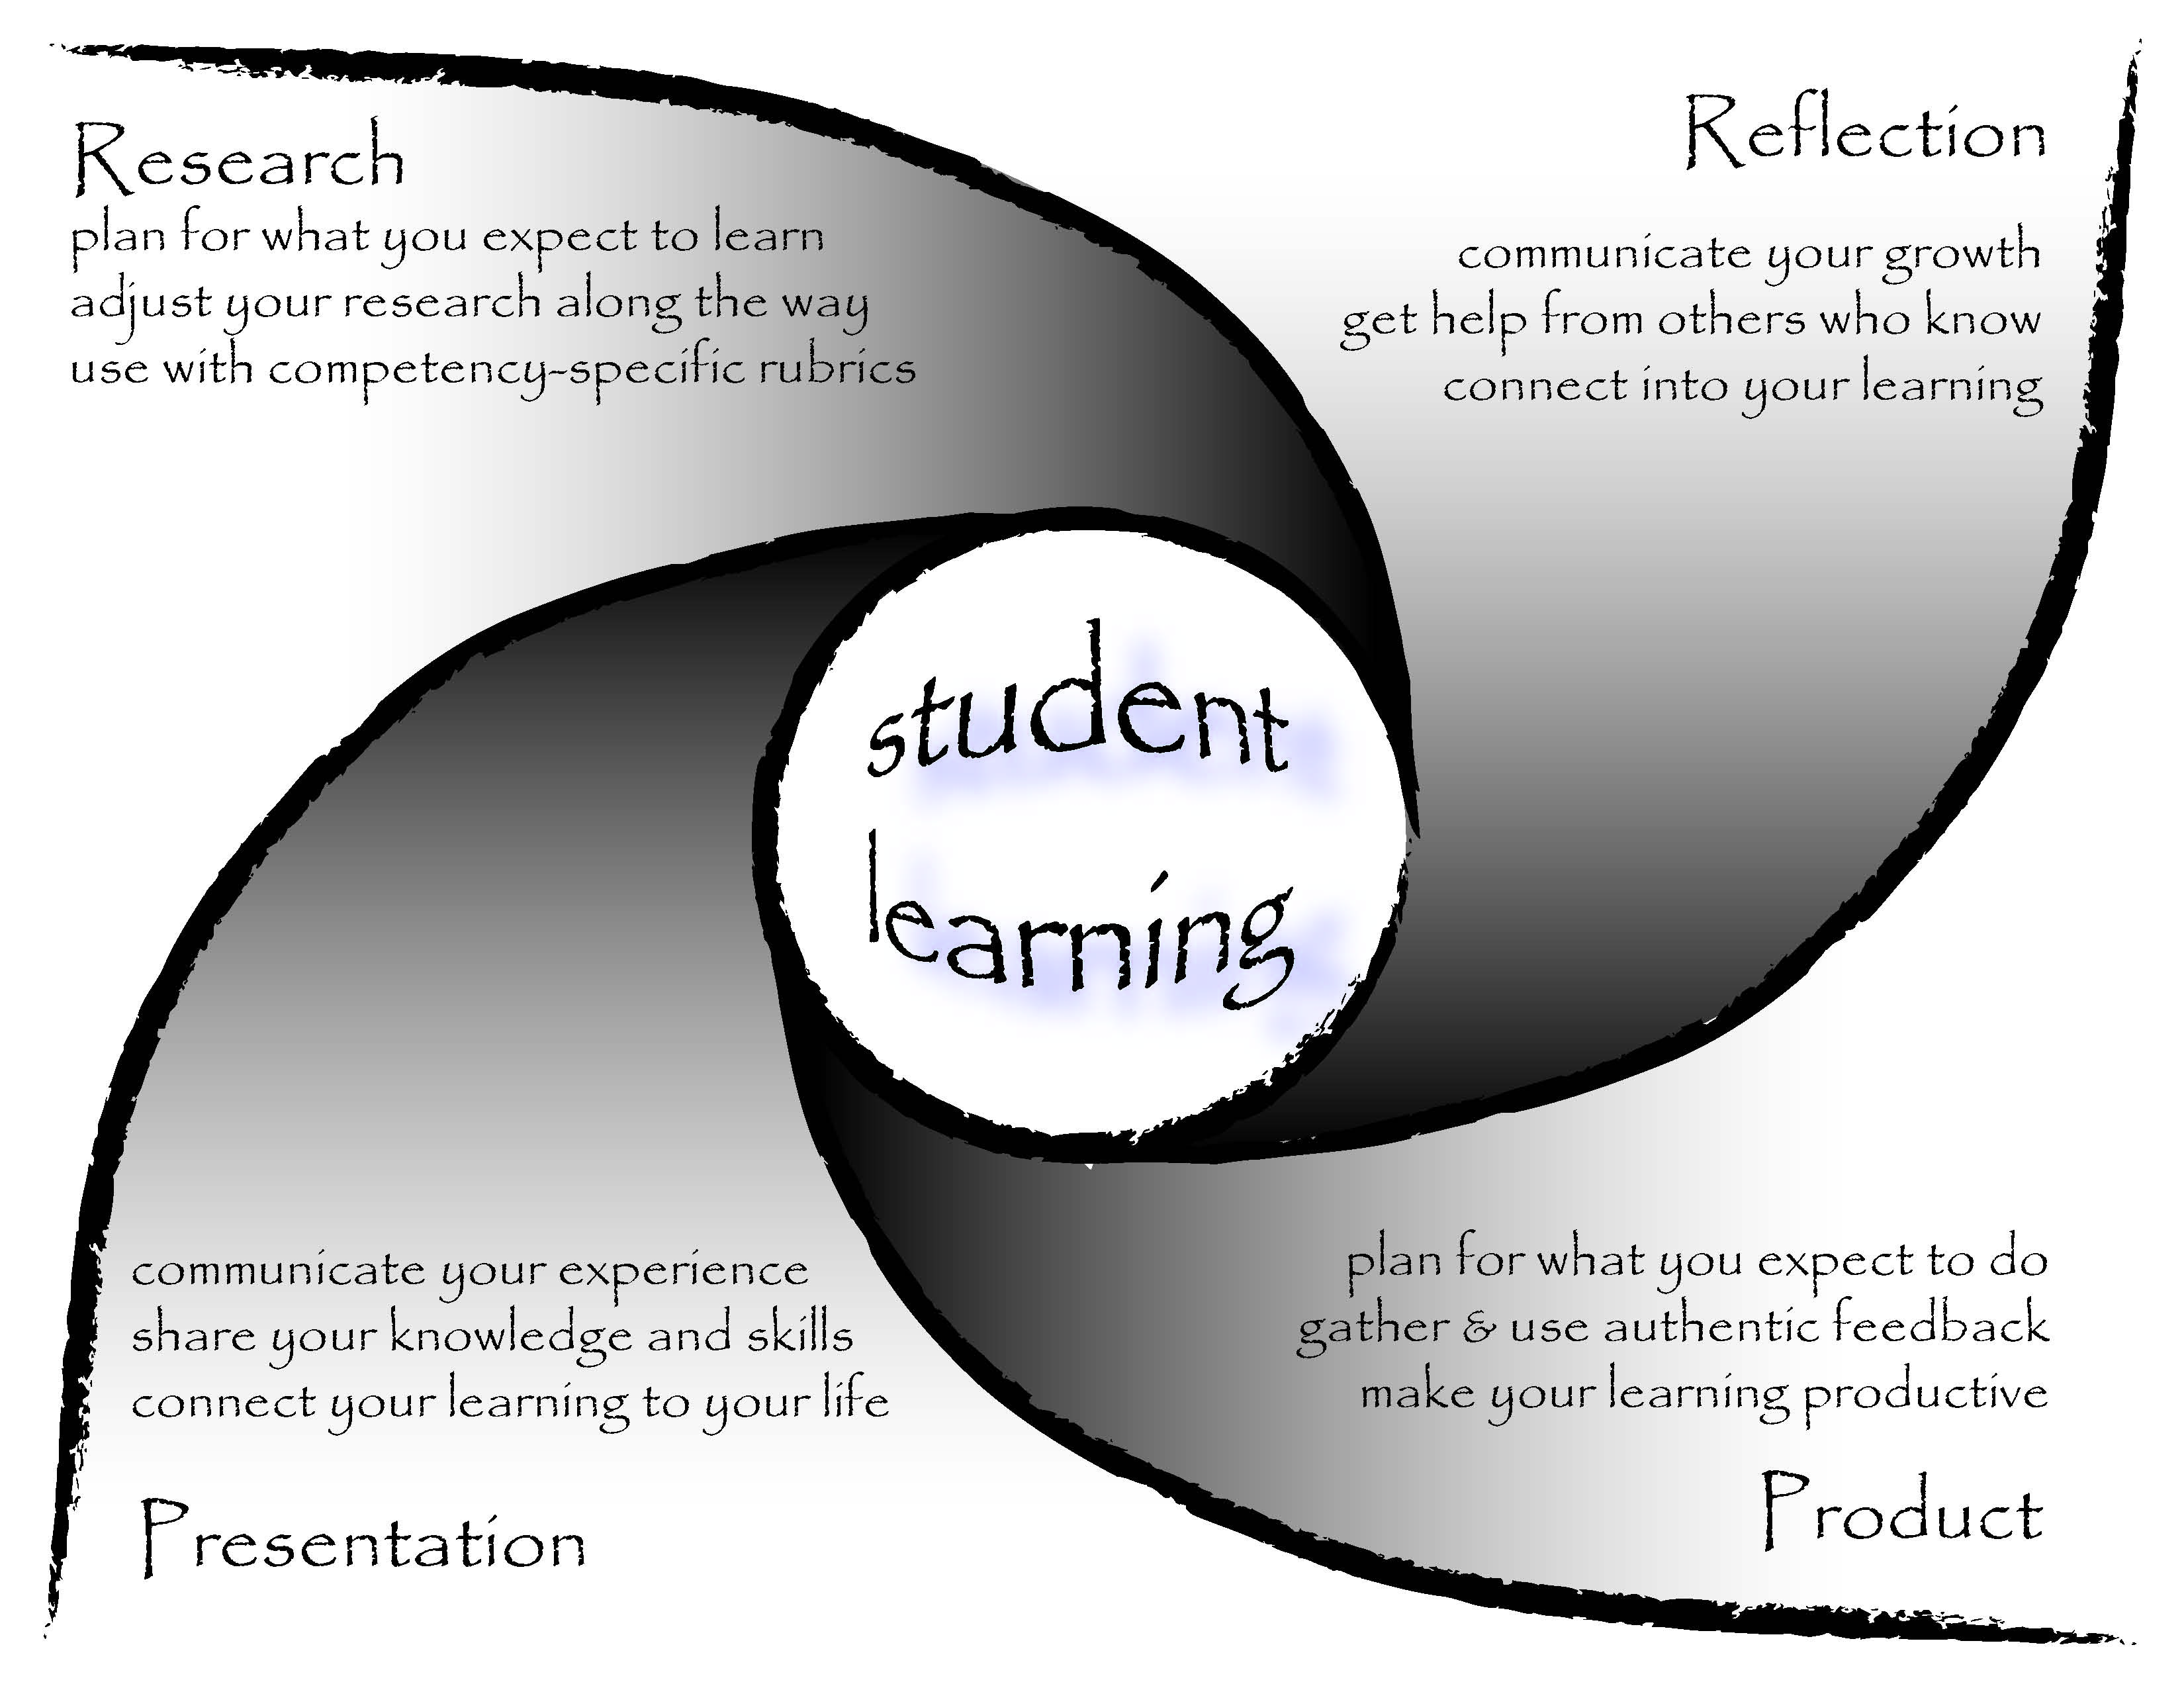 Four key ELO components: research, reflection, presentation, product